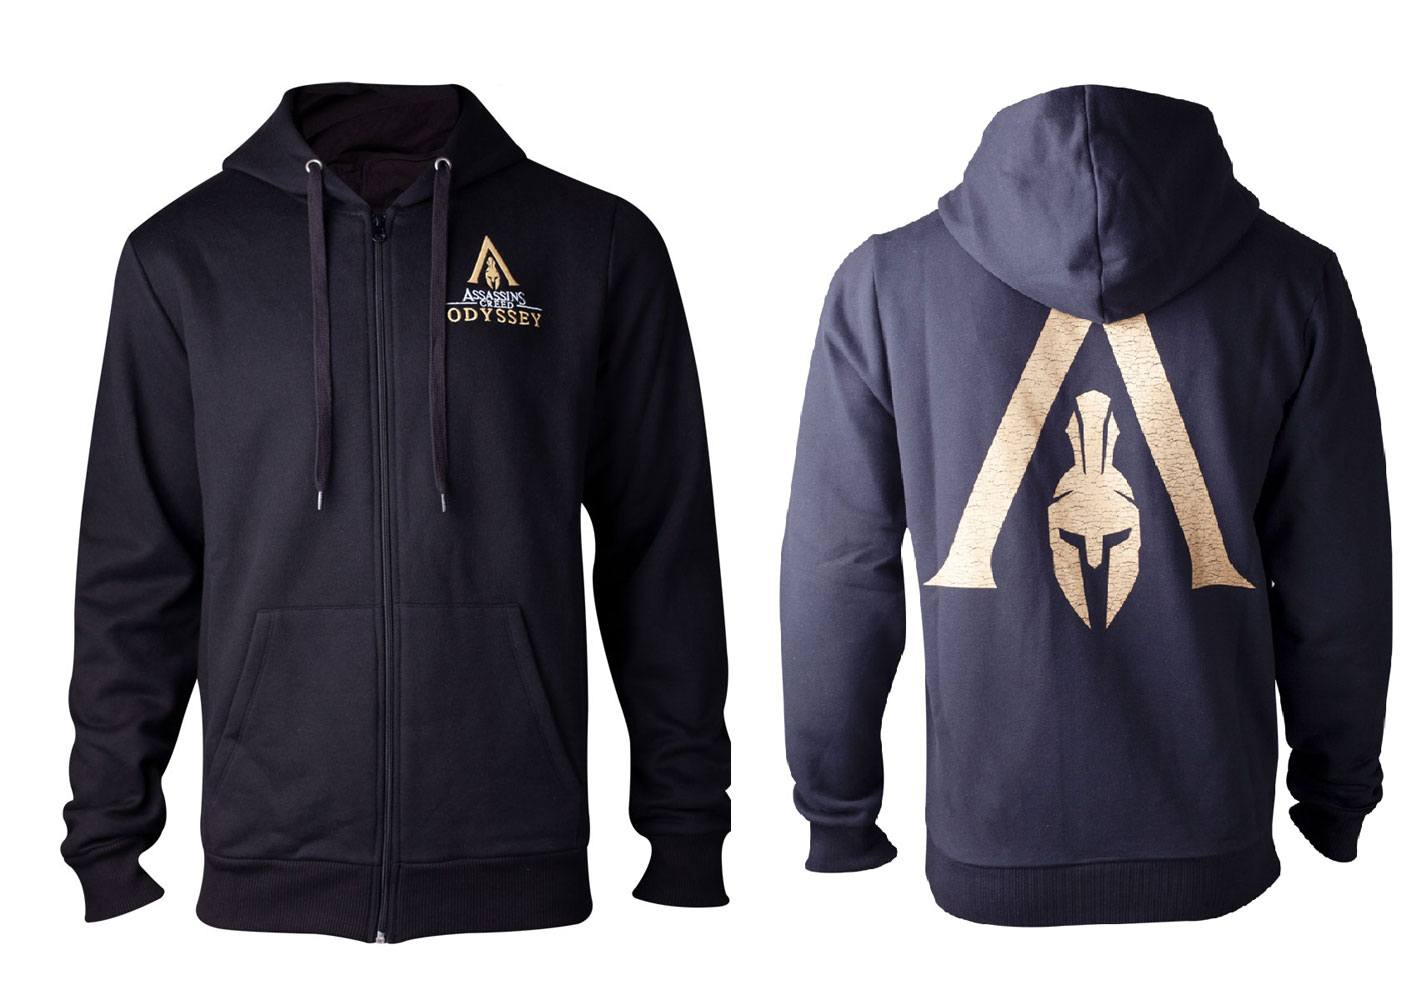 Assassin's Creed Odyssey Hoodie Spartan Size XL